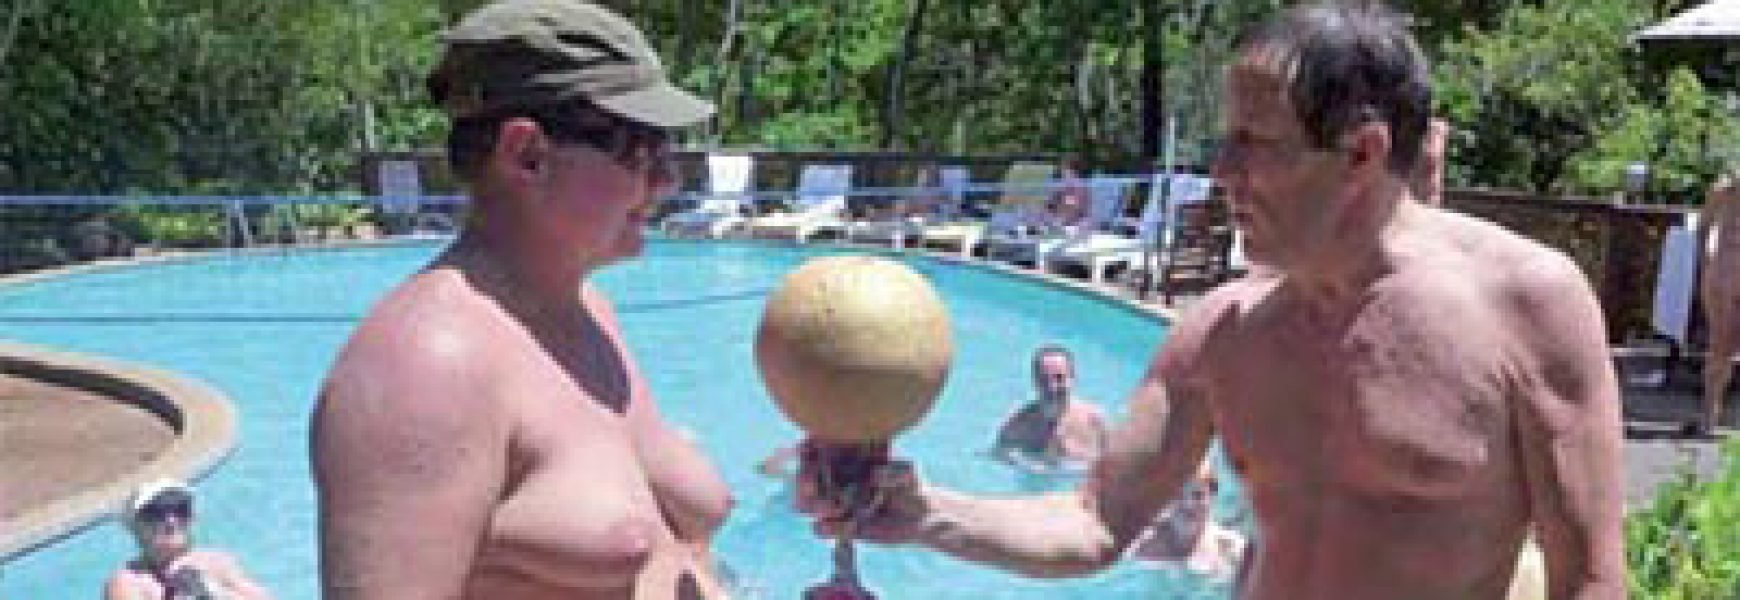 Nude Water Volleyball International Championships - The Australian Naturist Magazine